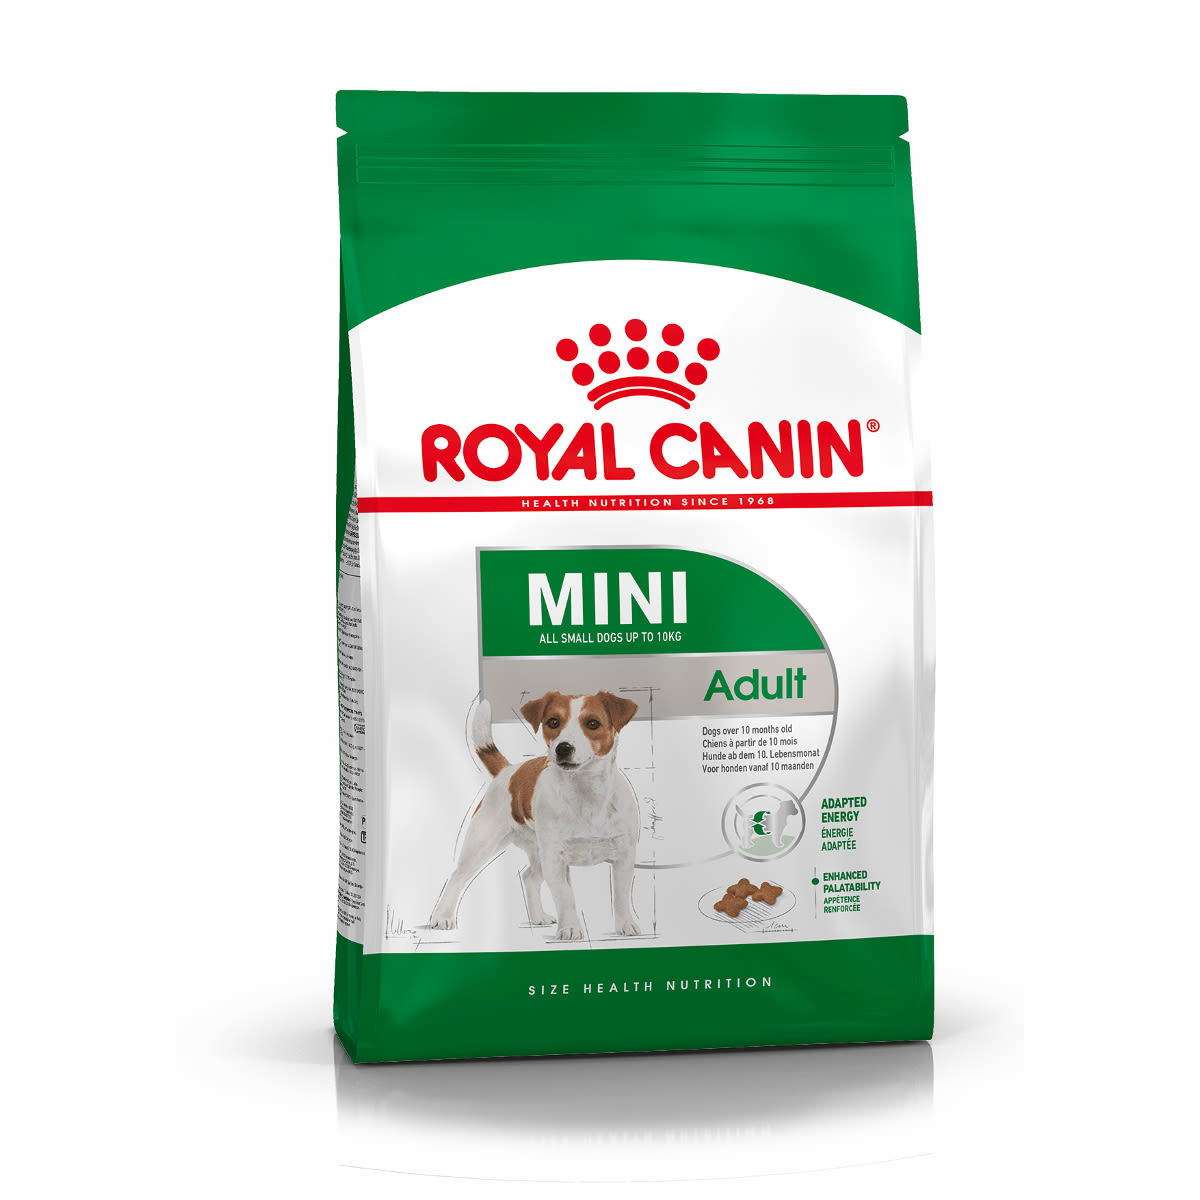 Šunų maistas Royal Canin Mini Adult 2kg.